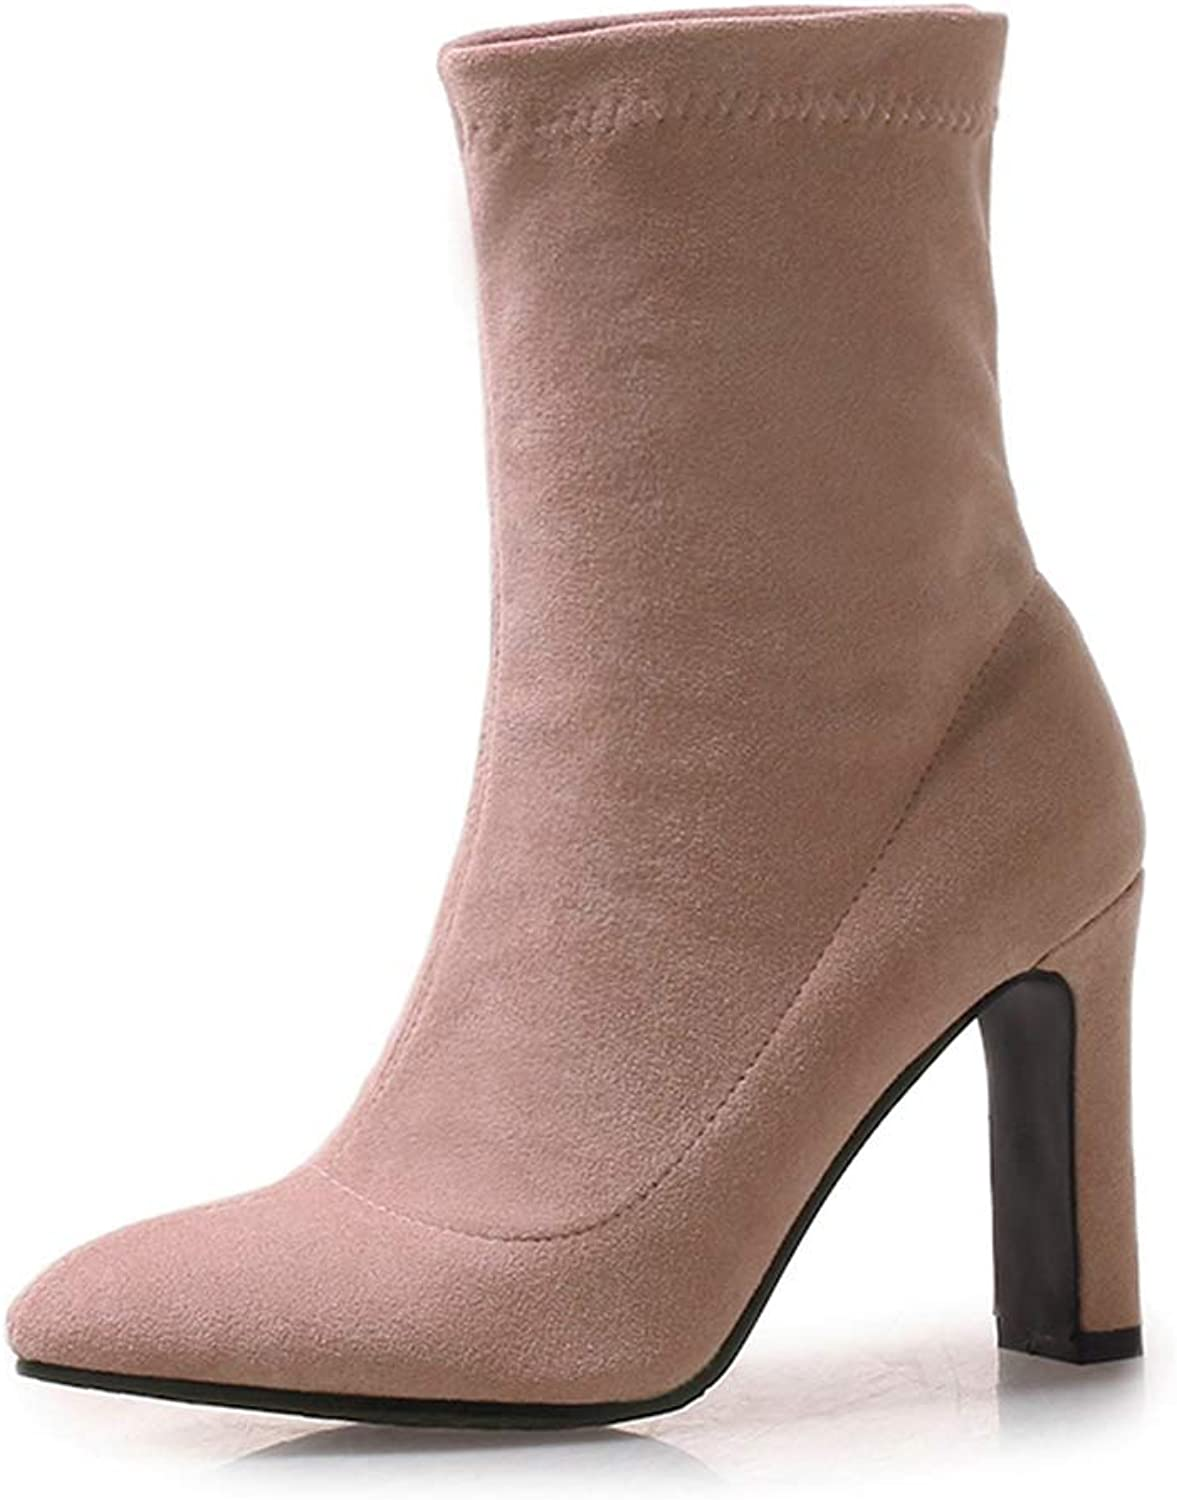 T-JULY Fashion Add Fur Warm Winter Boots Women shoes Thick Heels Solid Slip on Dress Ankle High Boots shoes